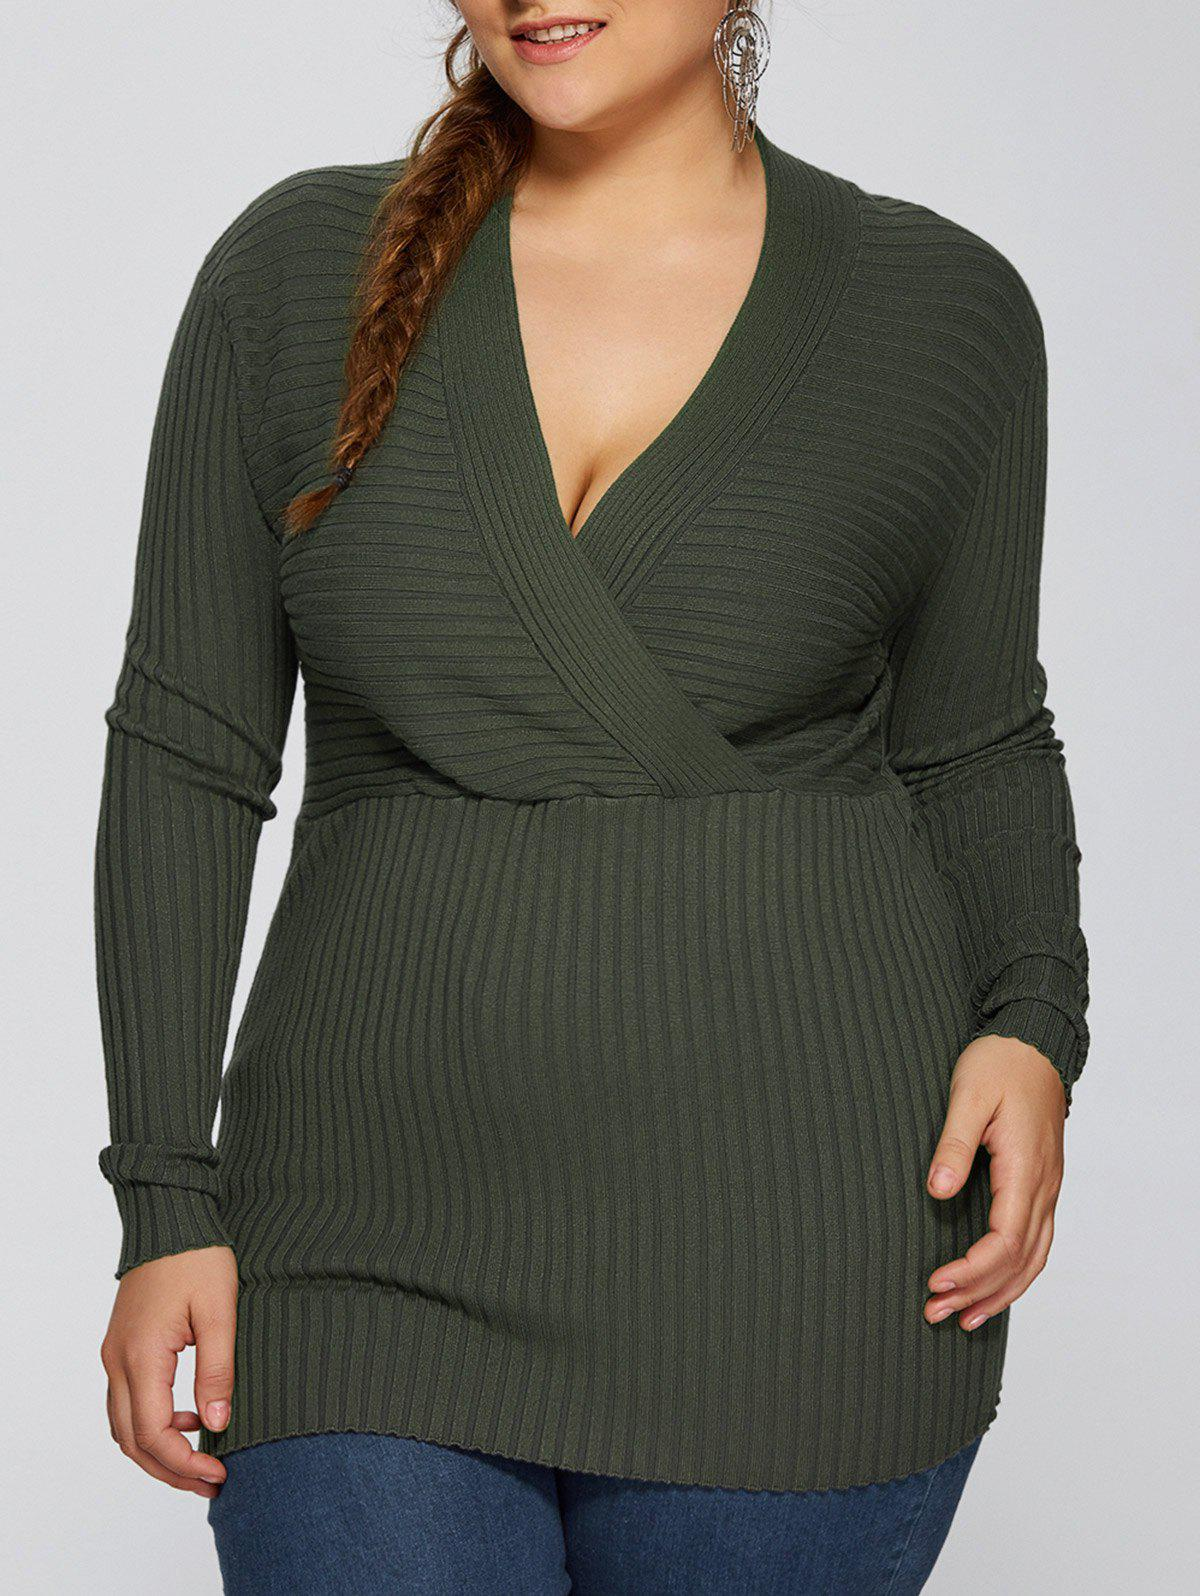 Plus Size V Neck Pullover Sweater - ARMY GREEN 2XL